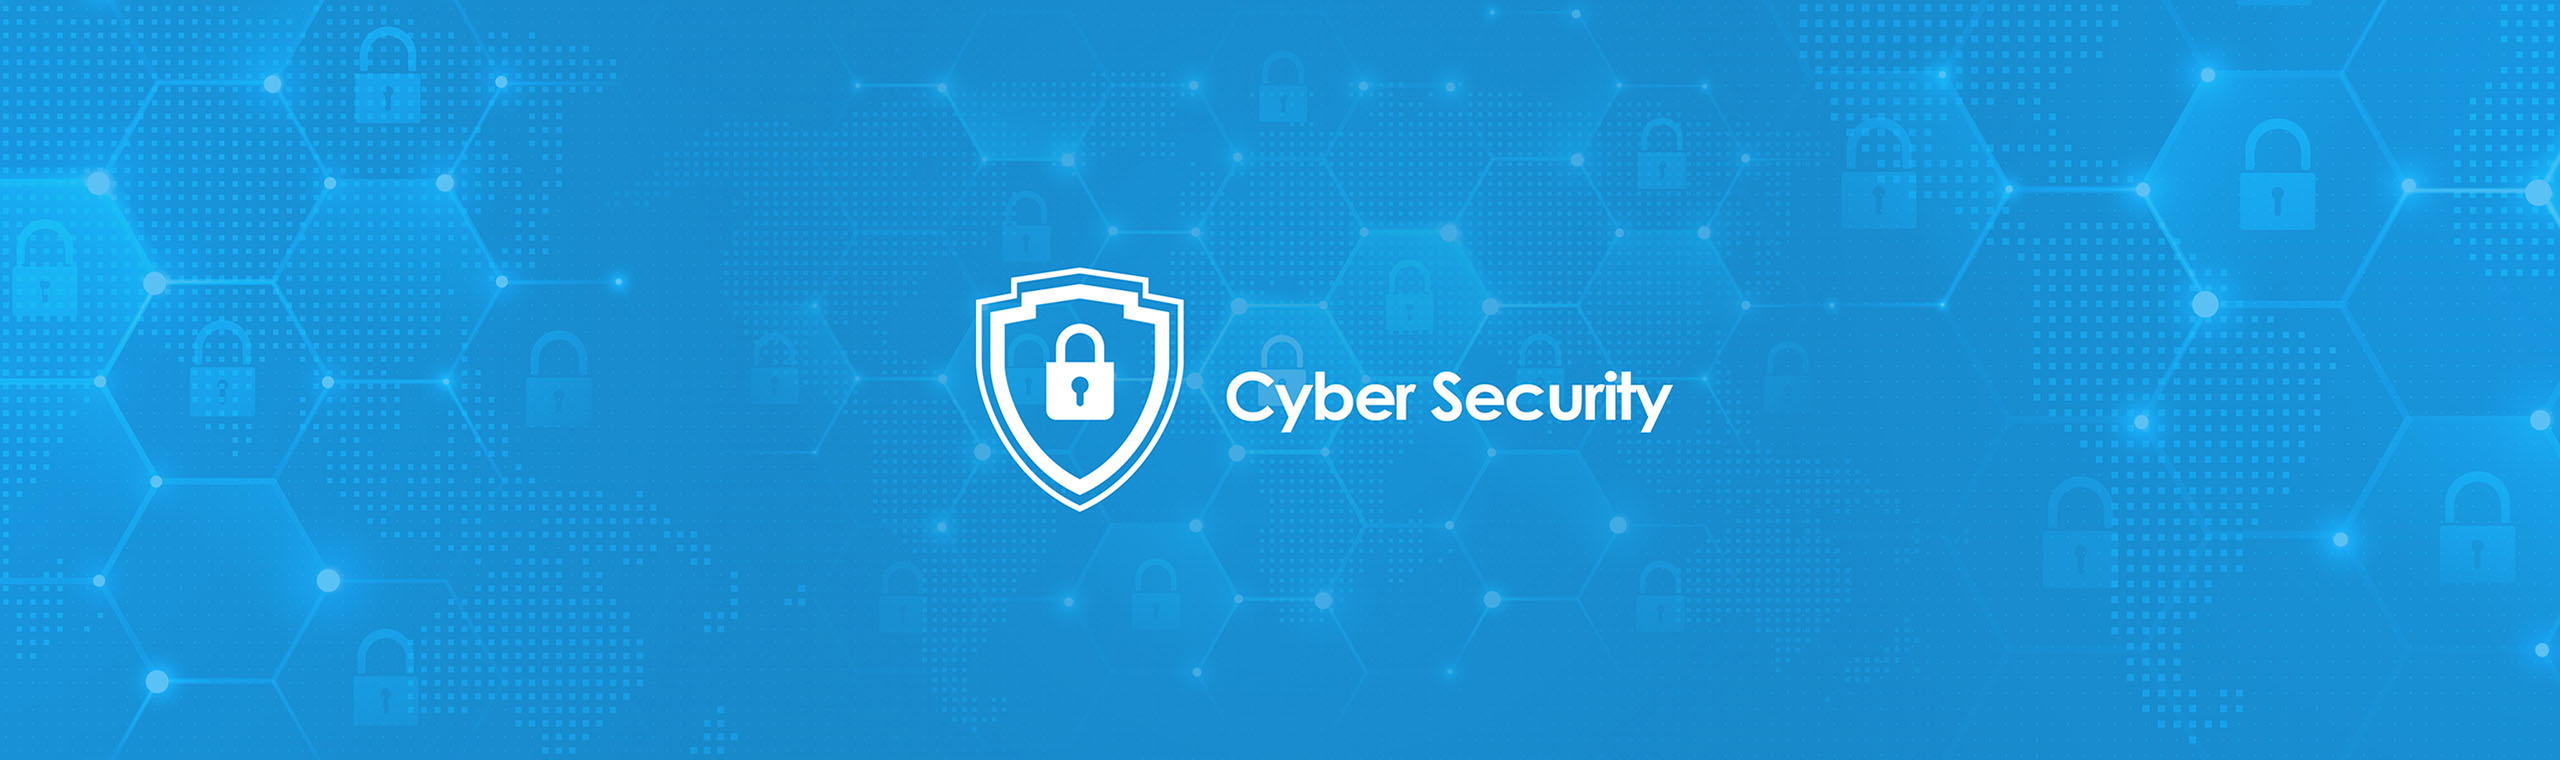 cyber security Our daily life, economic vitality, and national security depend on a stable, safe, and resilient cyberspace.